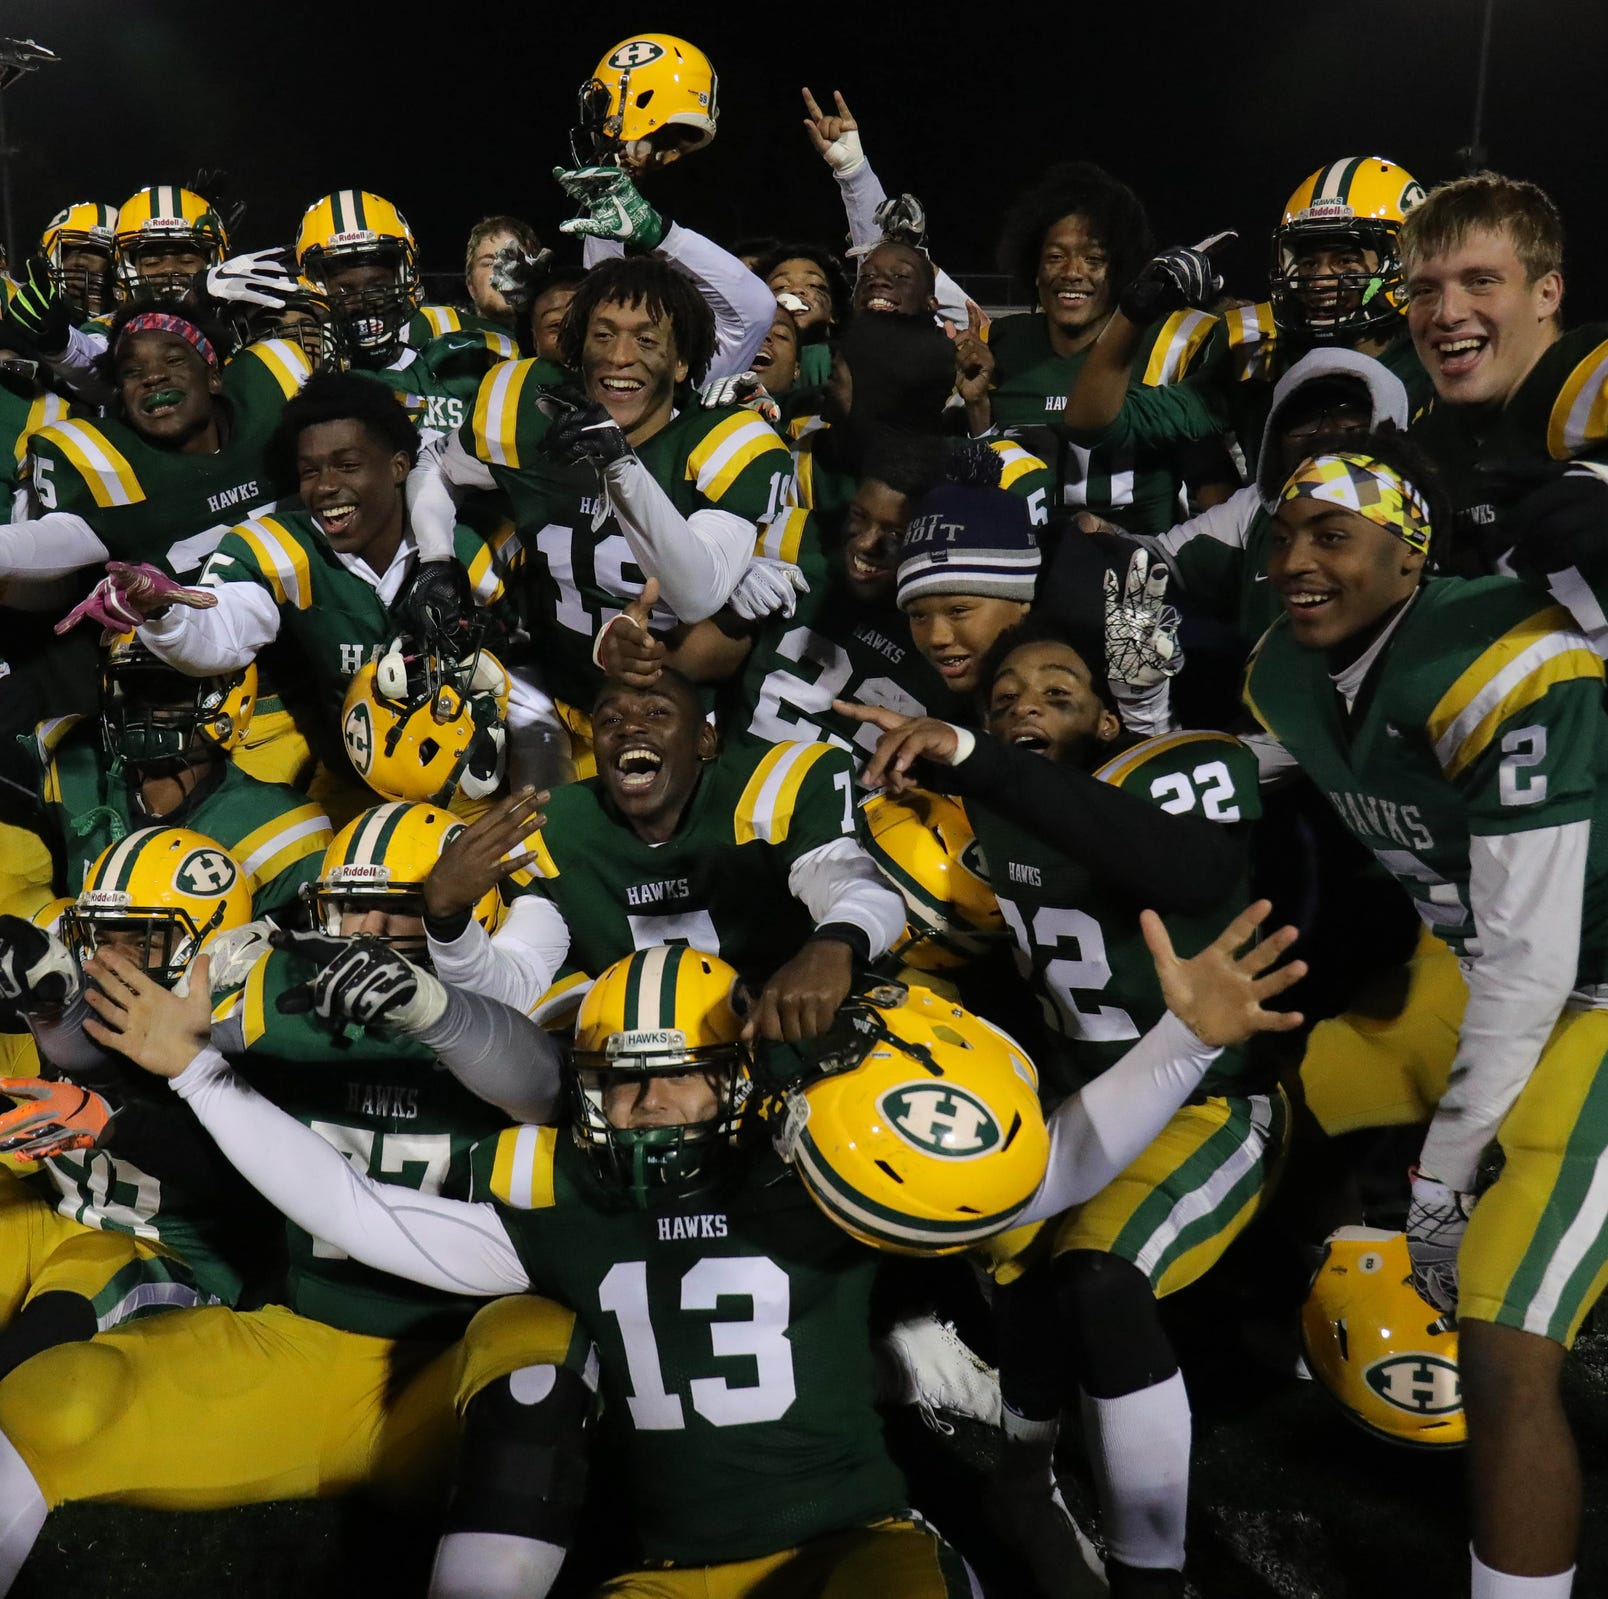 Not over yet! Farmington Hills Harrison's season continues with win